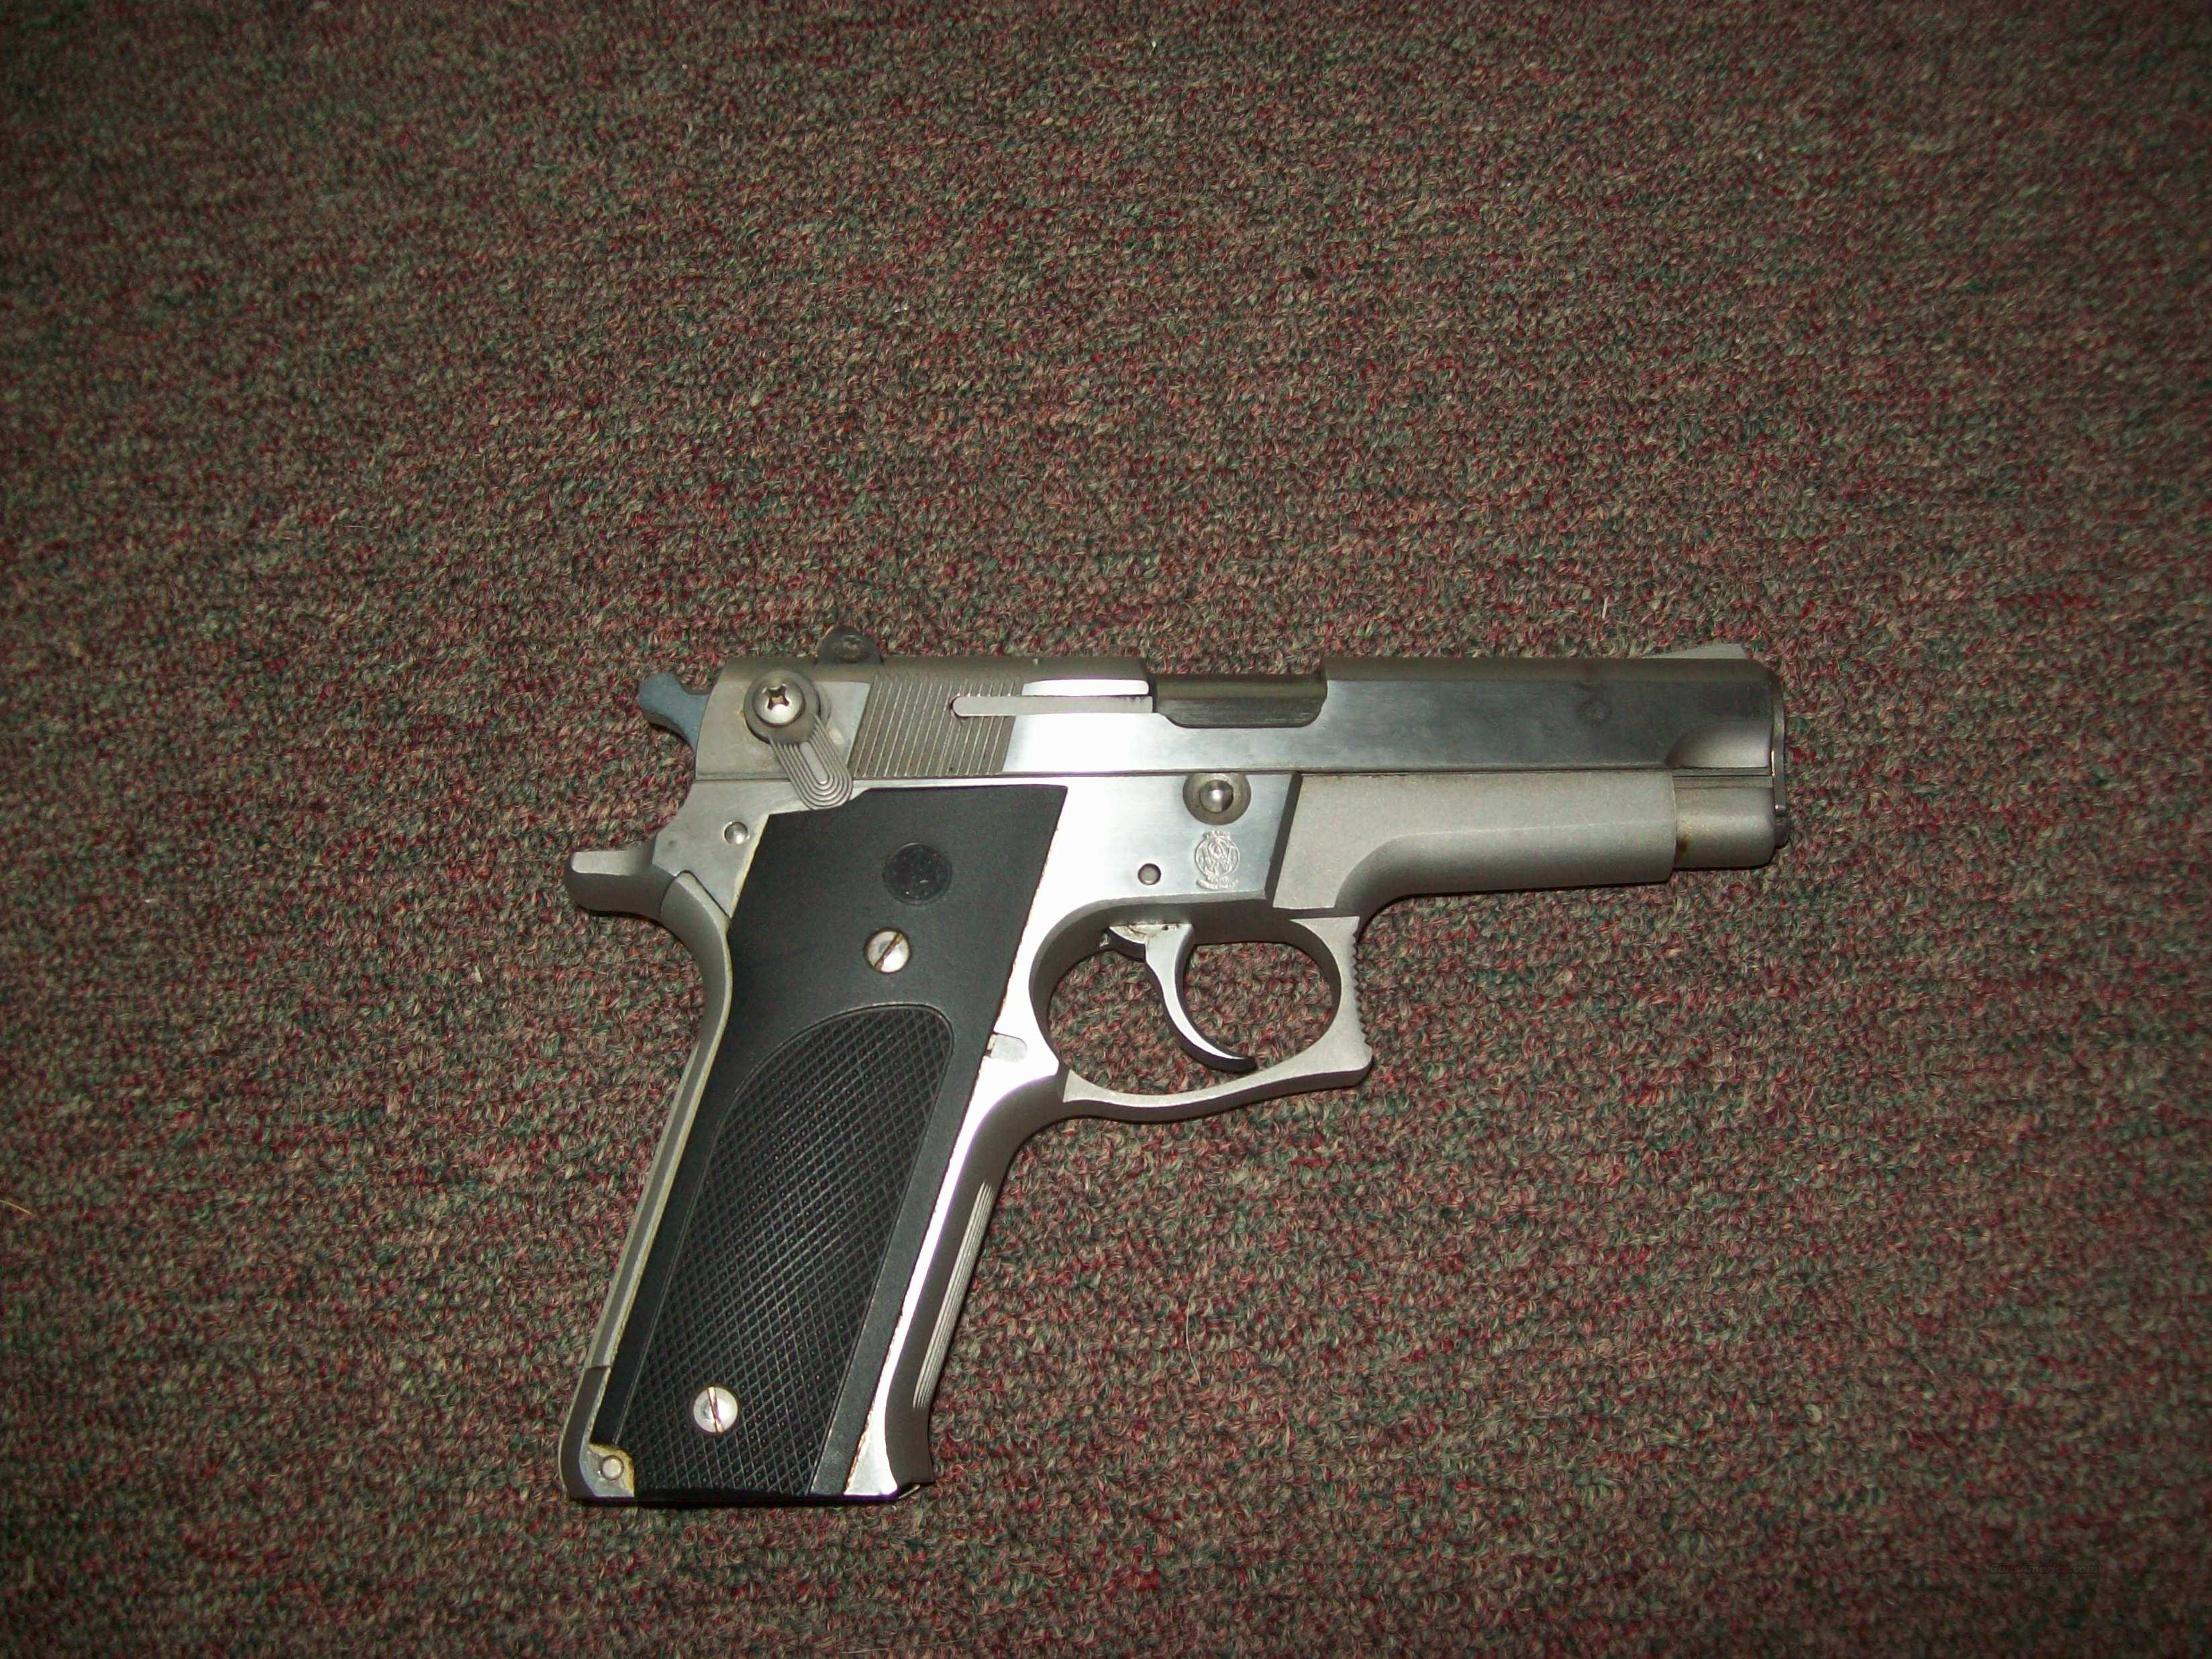 Smith & Wesson-model 659  Guns > Pistols > Smith & Wesson Pistols - Autos > Steel Frame